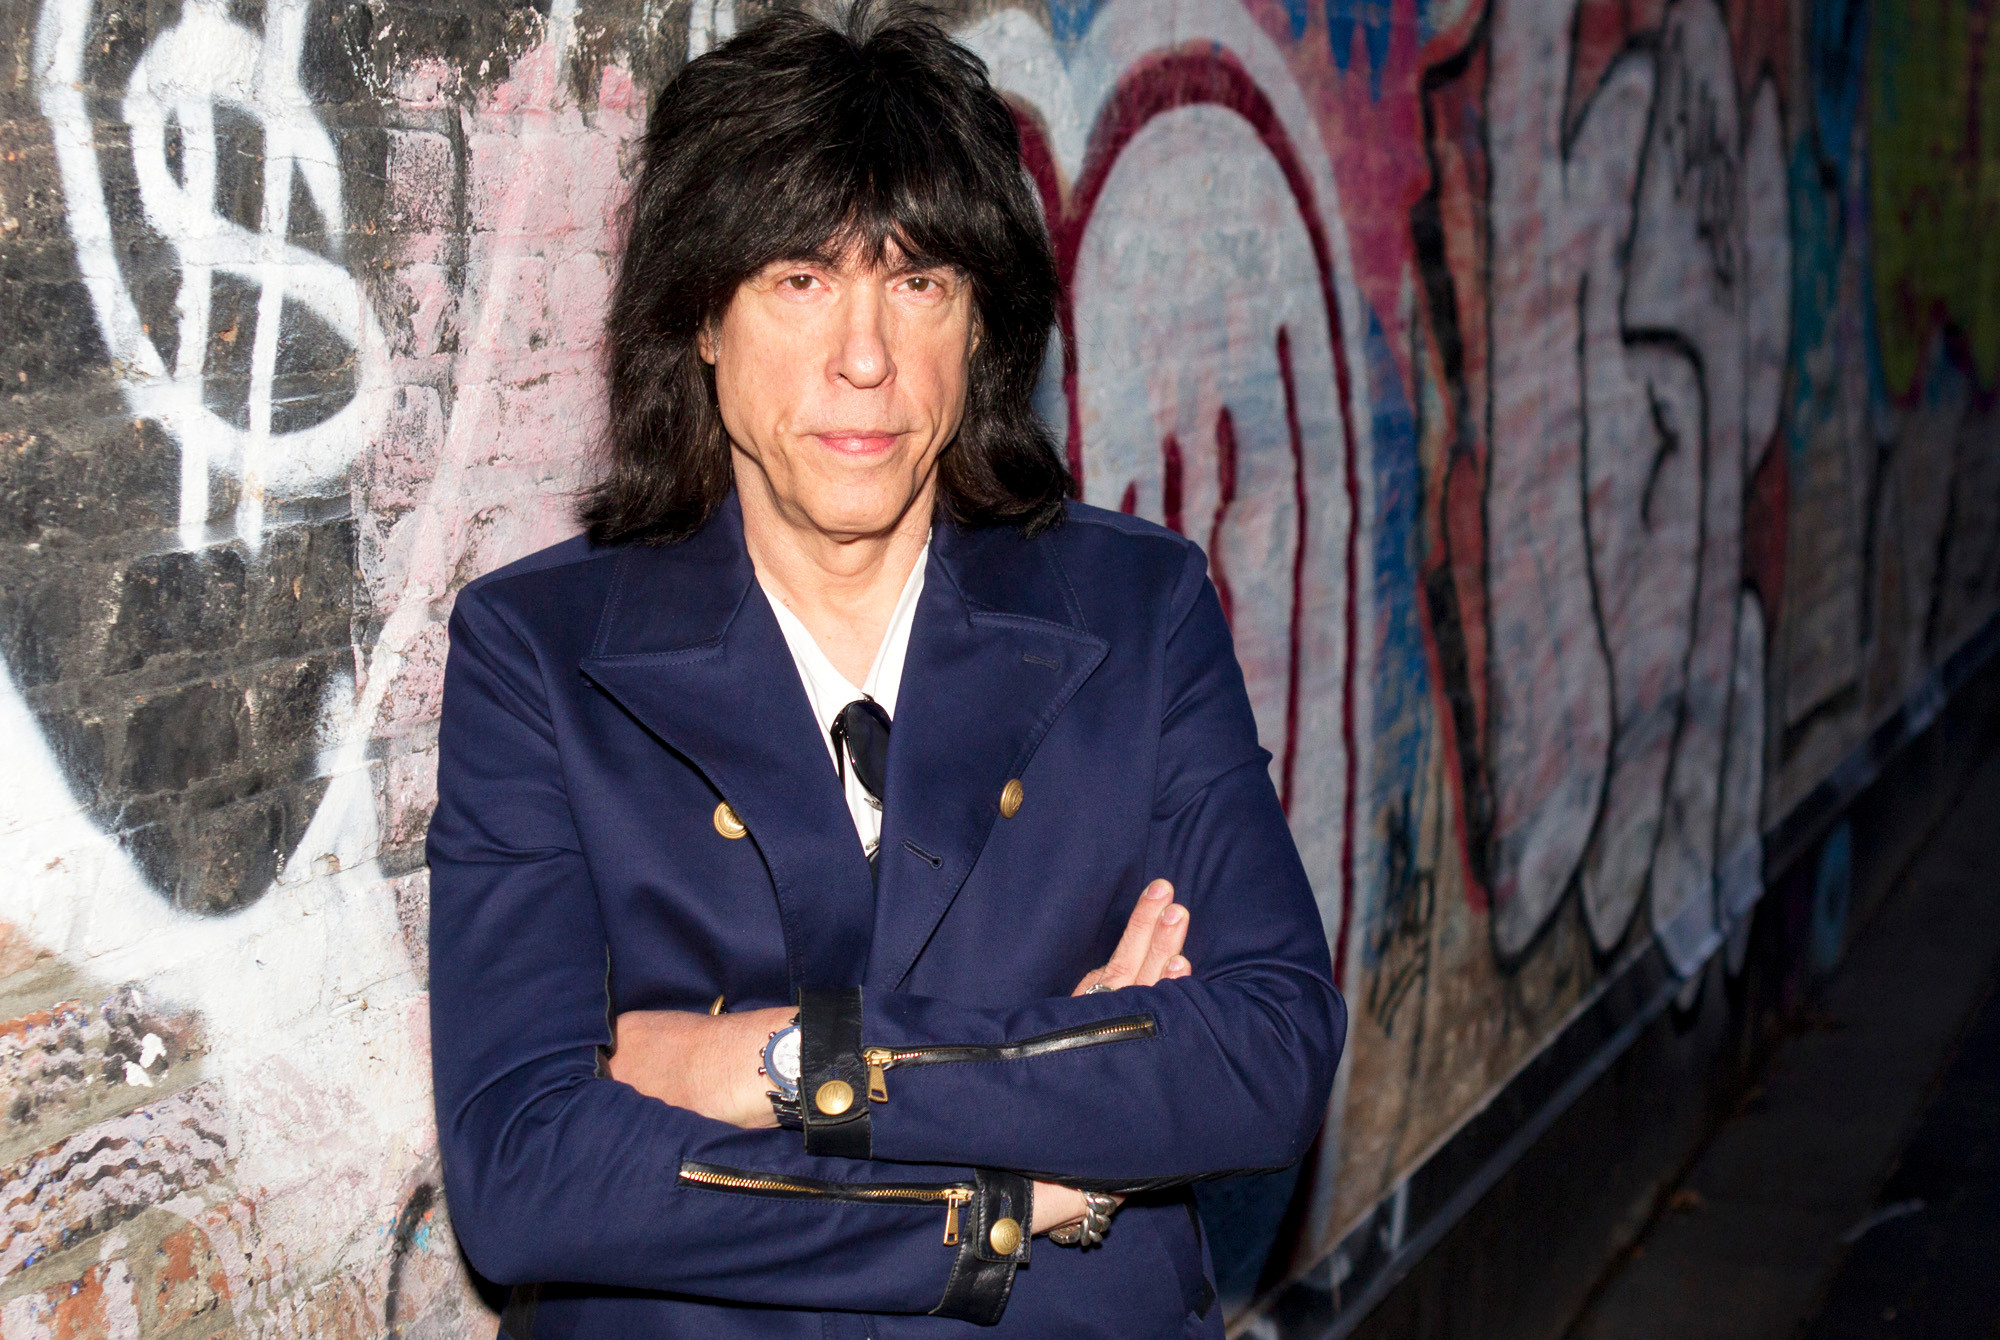 Marky Ramone | The Ramones